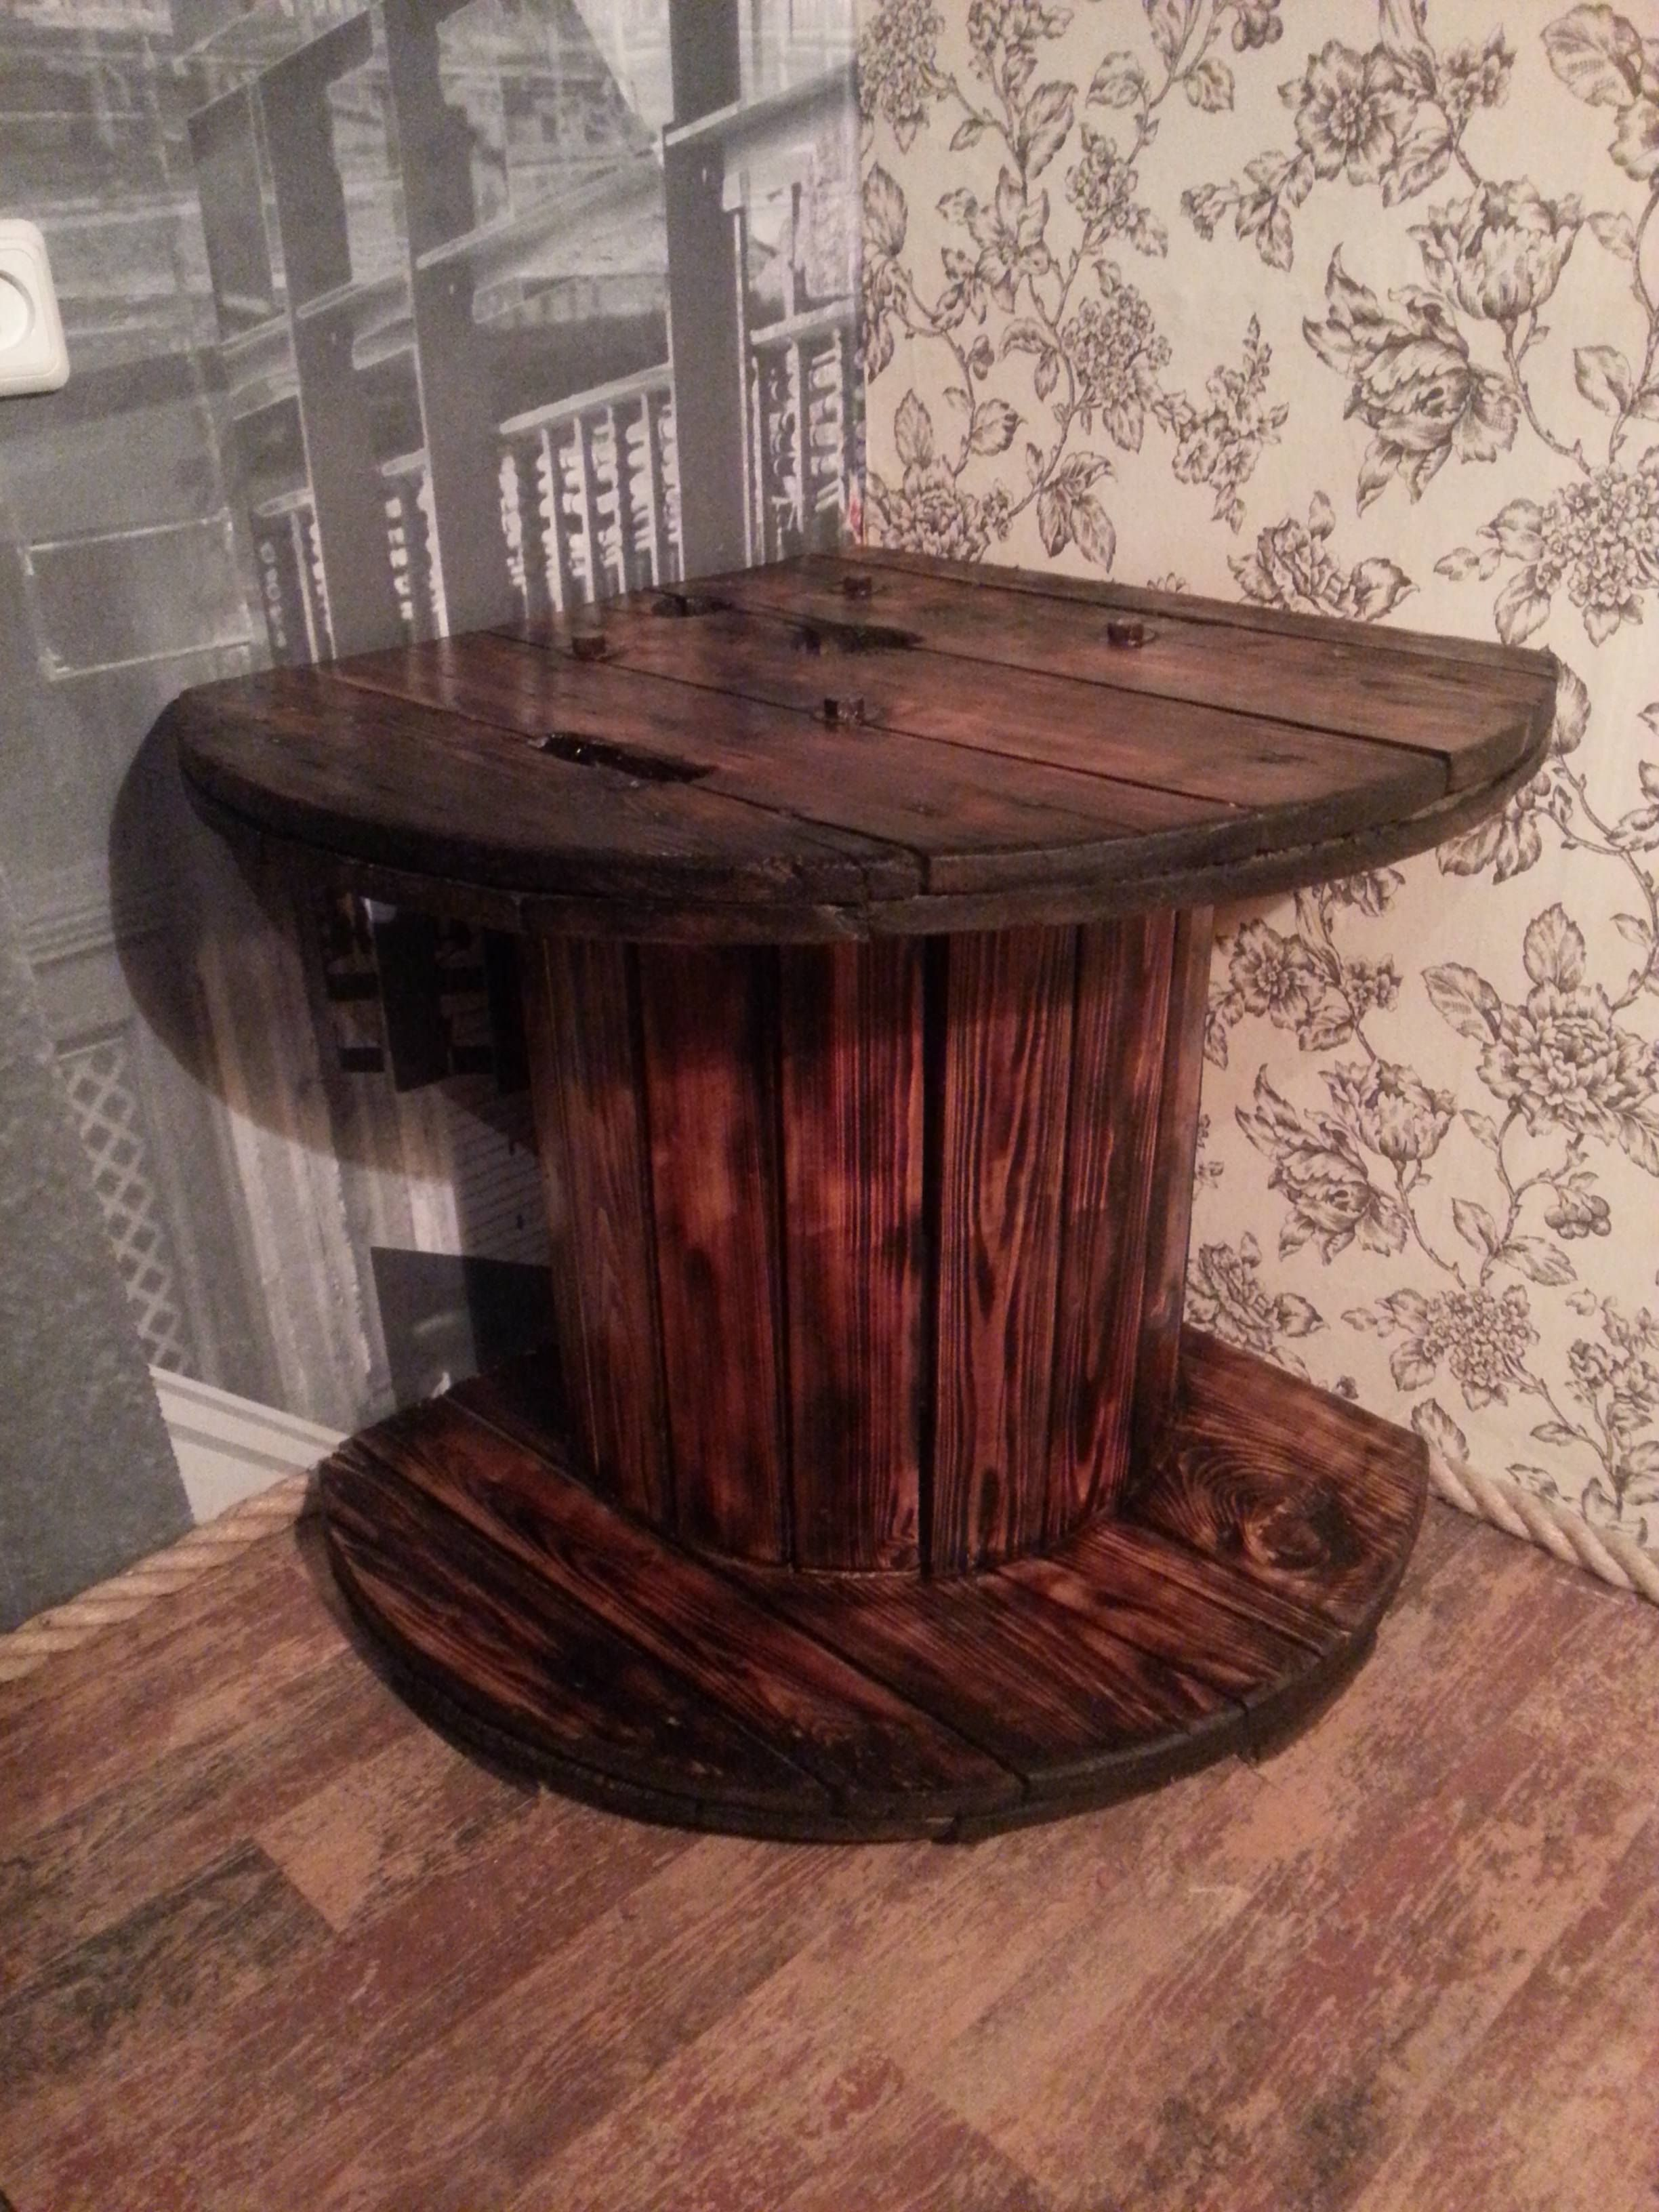 Corner Tv Table Made from a Reused Reel #cablespooltables